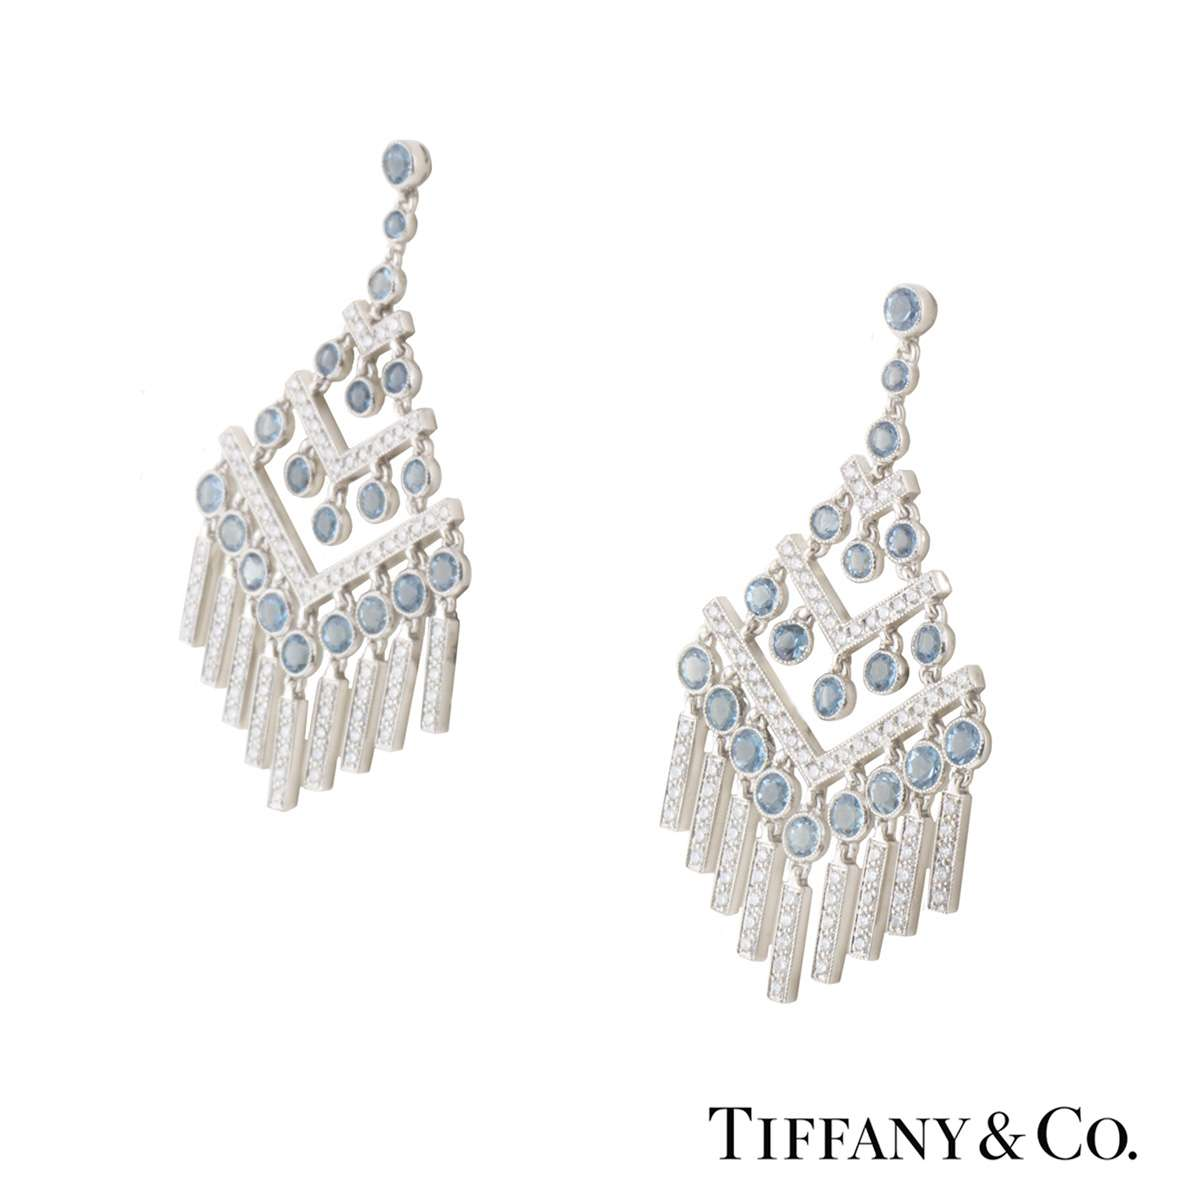 Tiffany & Co. Platinum Diamond and Aquamarine Jazz Chevron Earrings